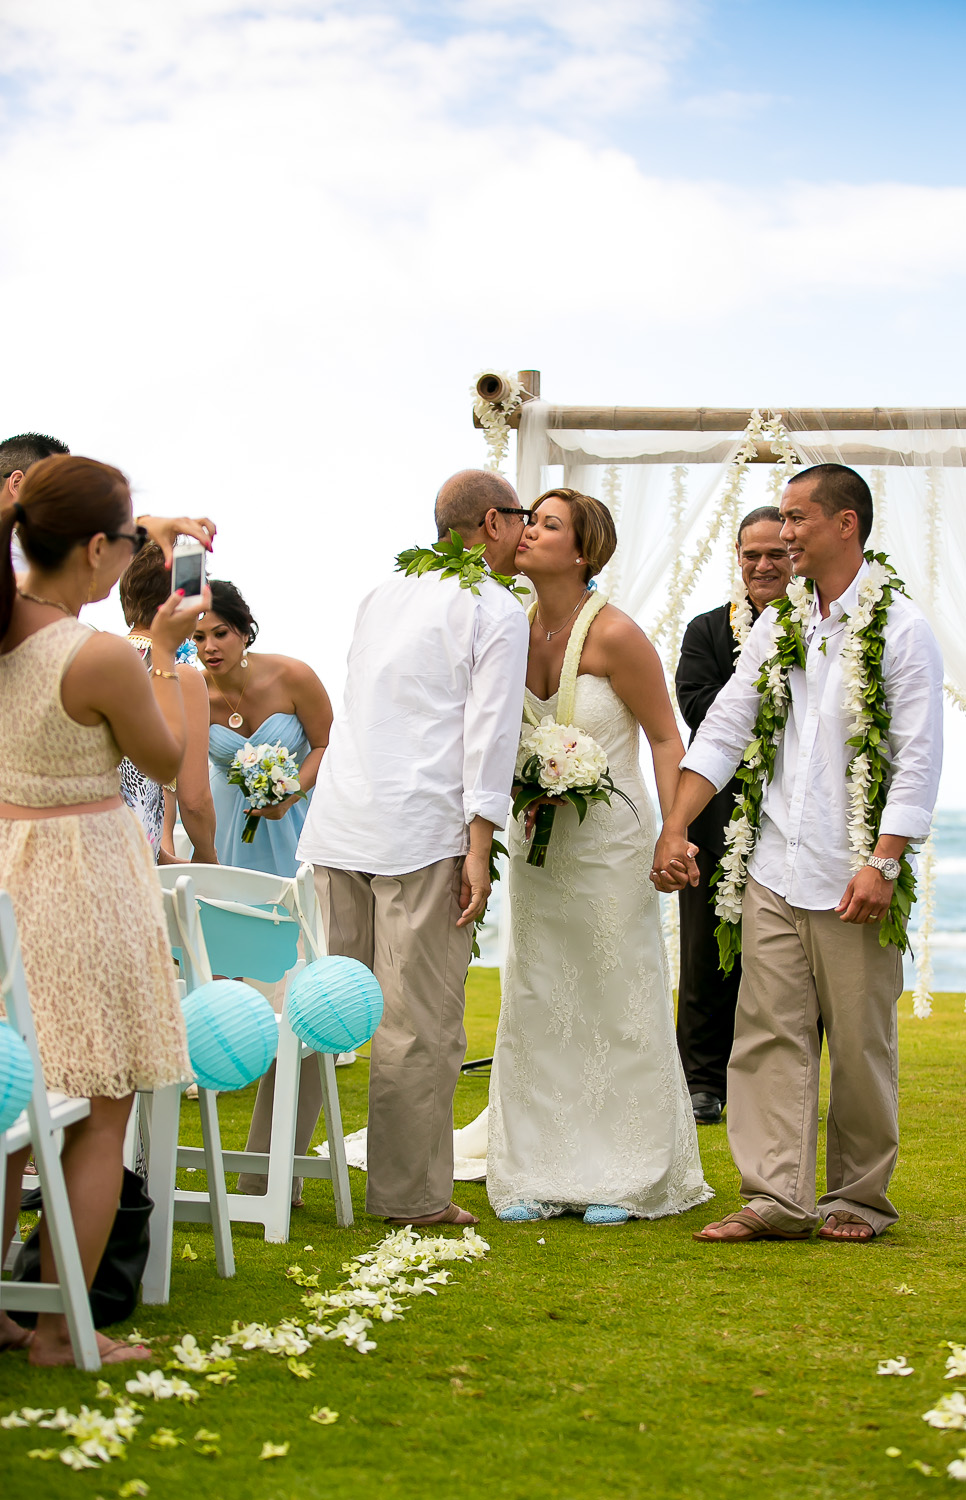 oahu wedding photography, chris holt photography, wedding, love, beach, north shore, hawaii, loulu palm estate, private estate